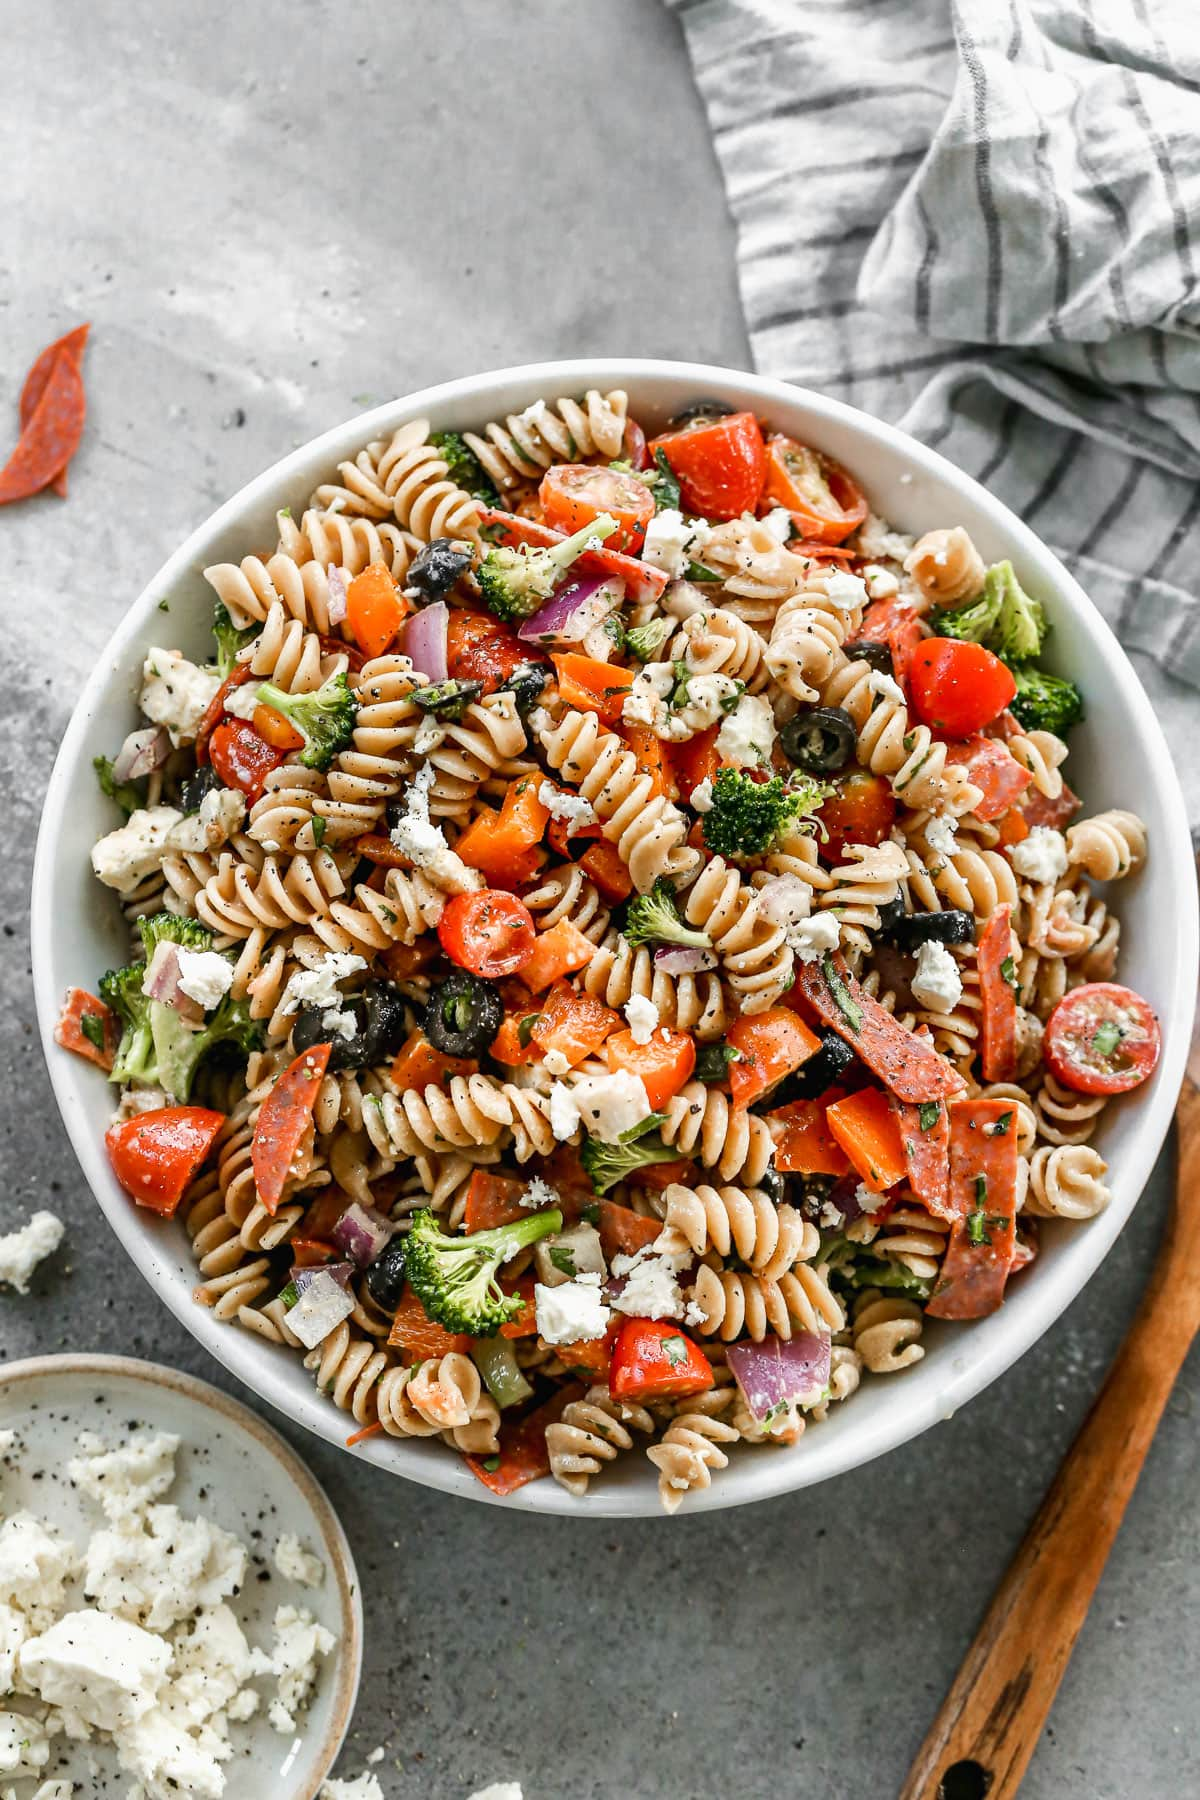 Pepperoni Pizza Pasta Salad — our favorite pasta salad recipe and PERFECT for a summertime lunch or dinner. Made with an easy homemade Italian dressing and loaded with meat, cheese, and fresh crunchy veggies @wellplated